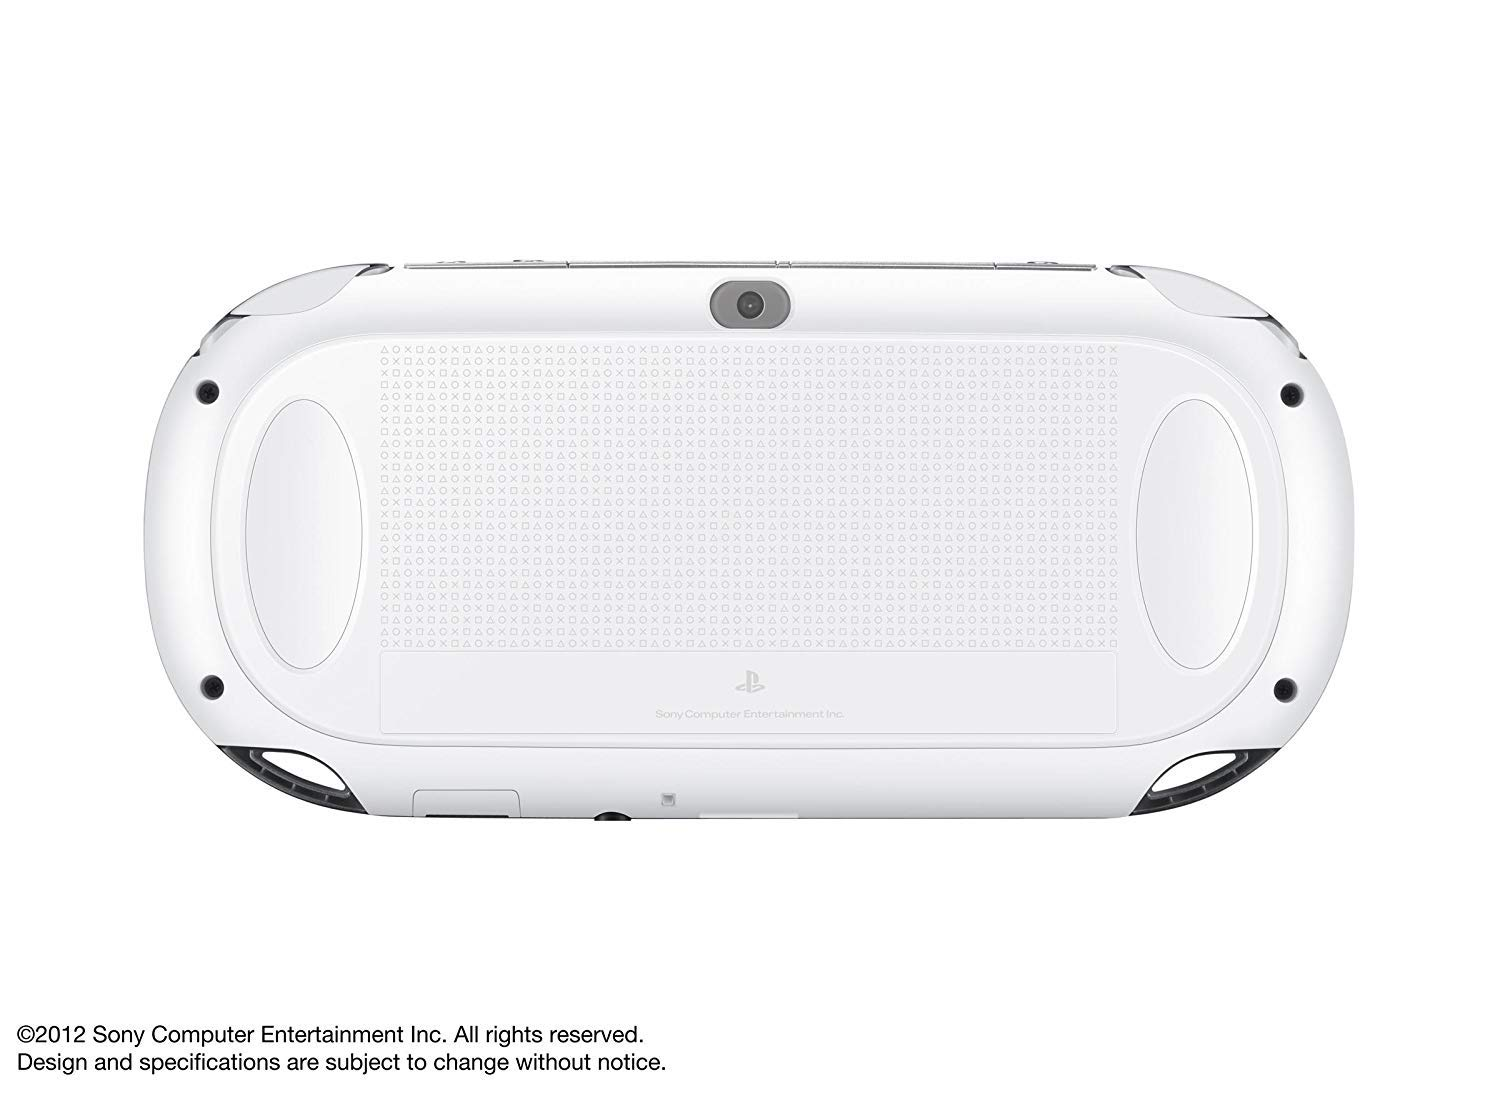 Amazon.com: Sony Playstation Vita OLED 1000 Series WiFi ...